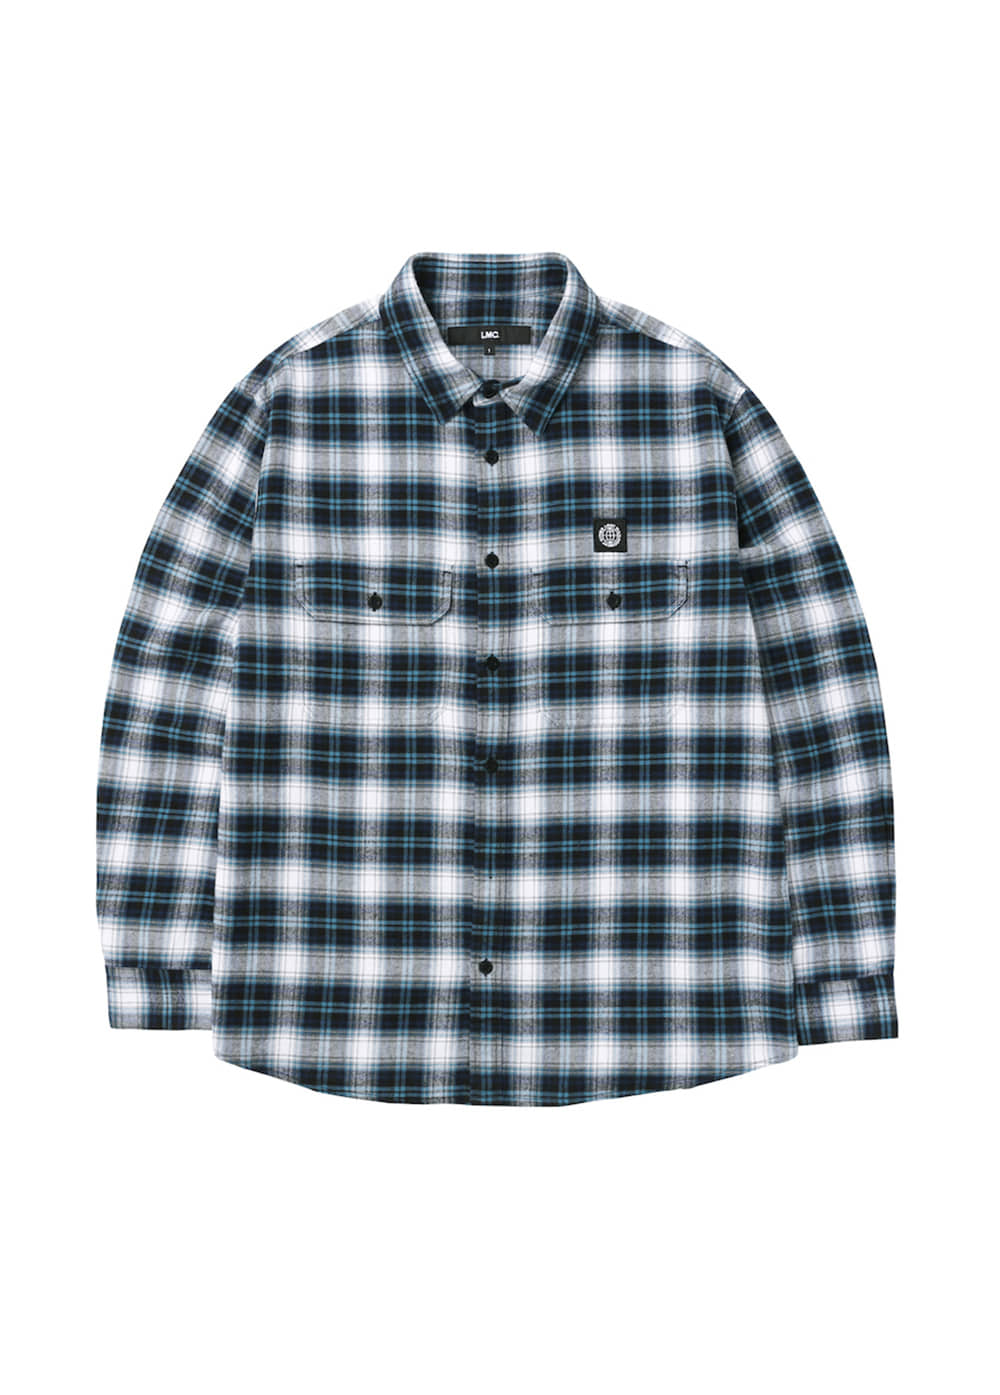 LMC B LINE PLAID SHIRT blue